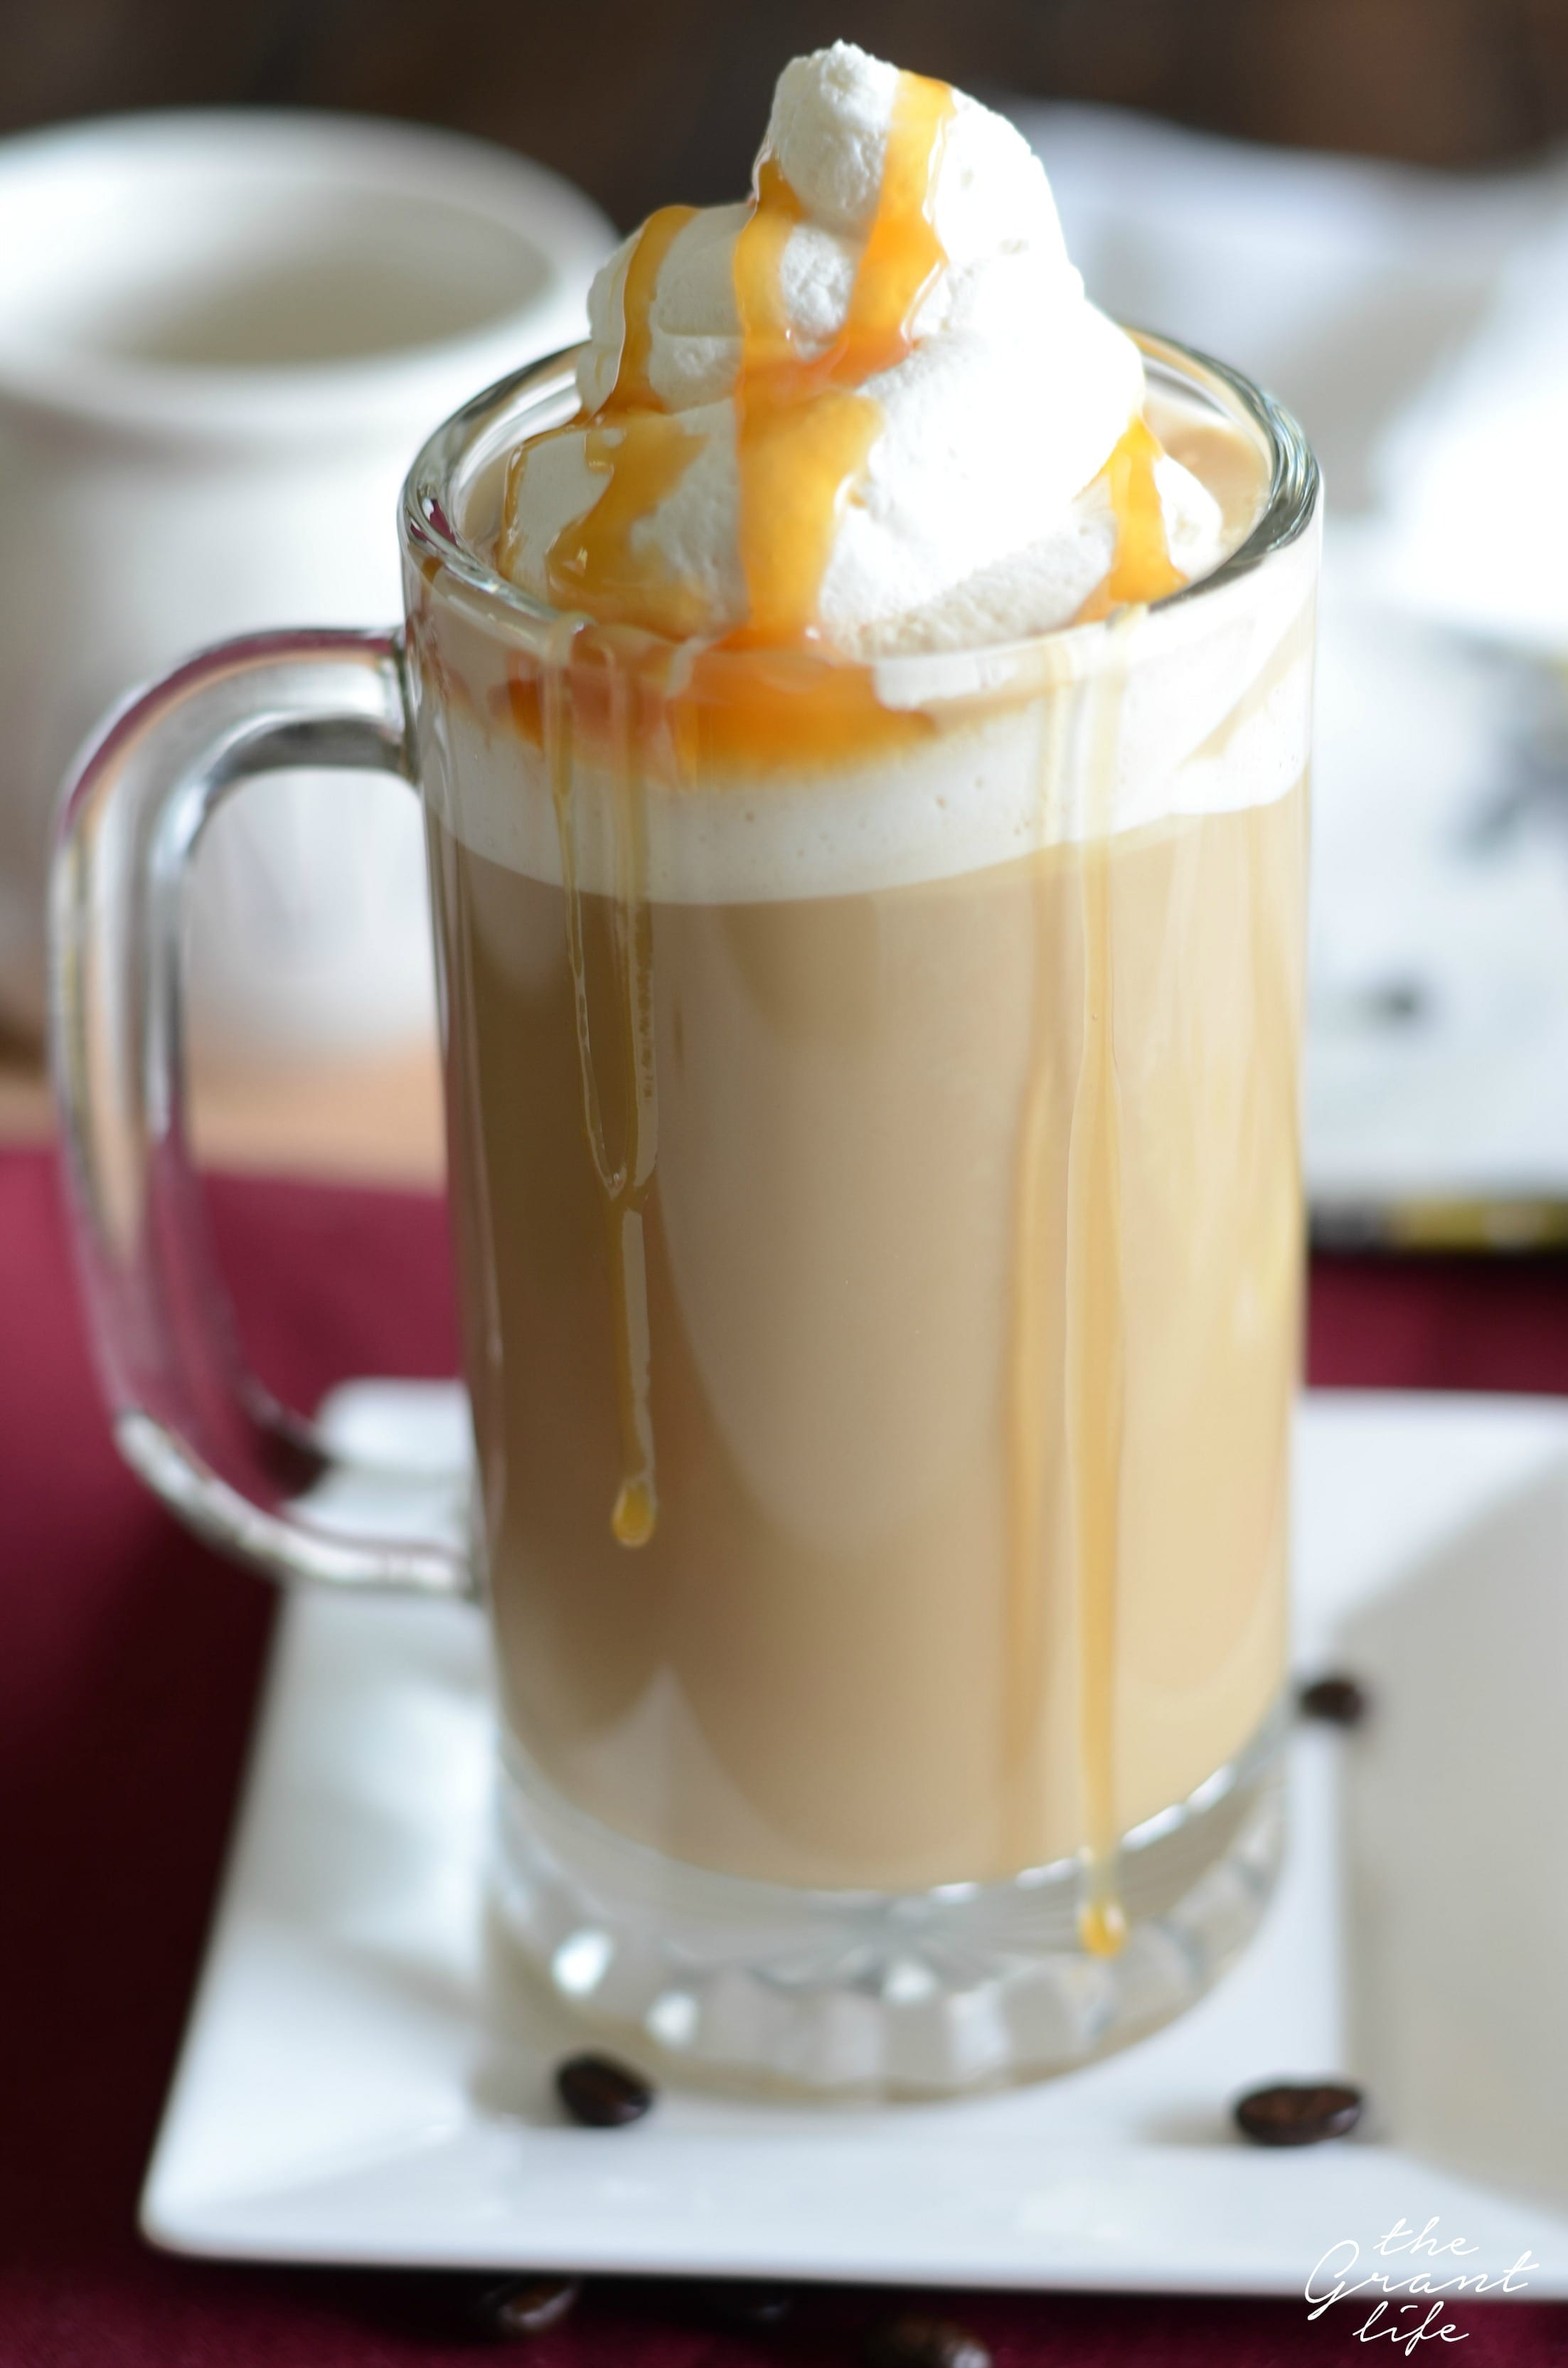 How to make a butterbeer latte at home